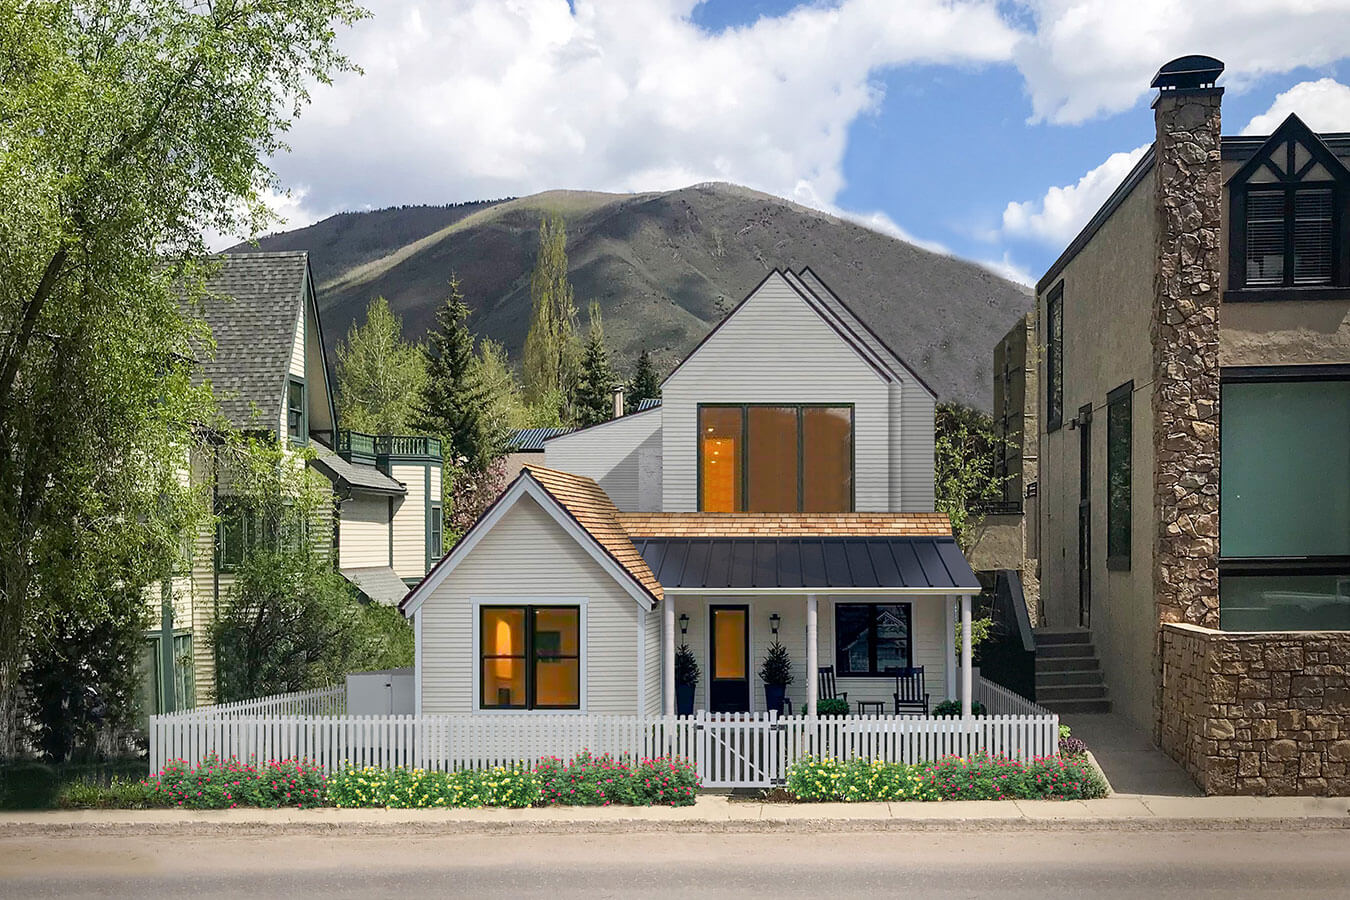 Top Aspen Architect Brewster McLeod Miners Cottage